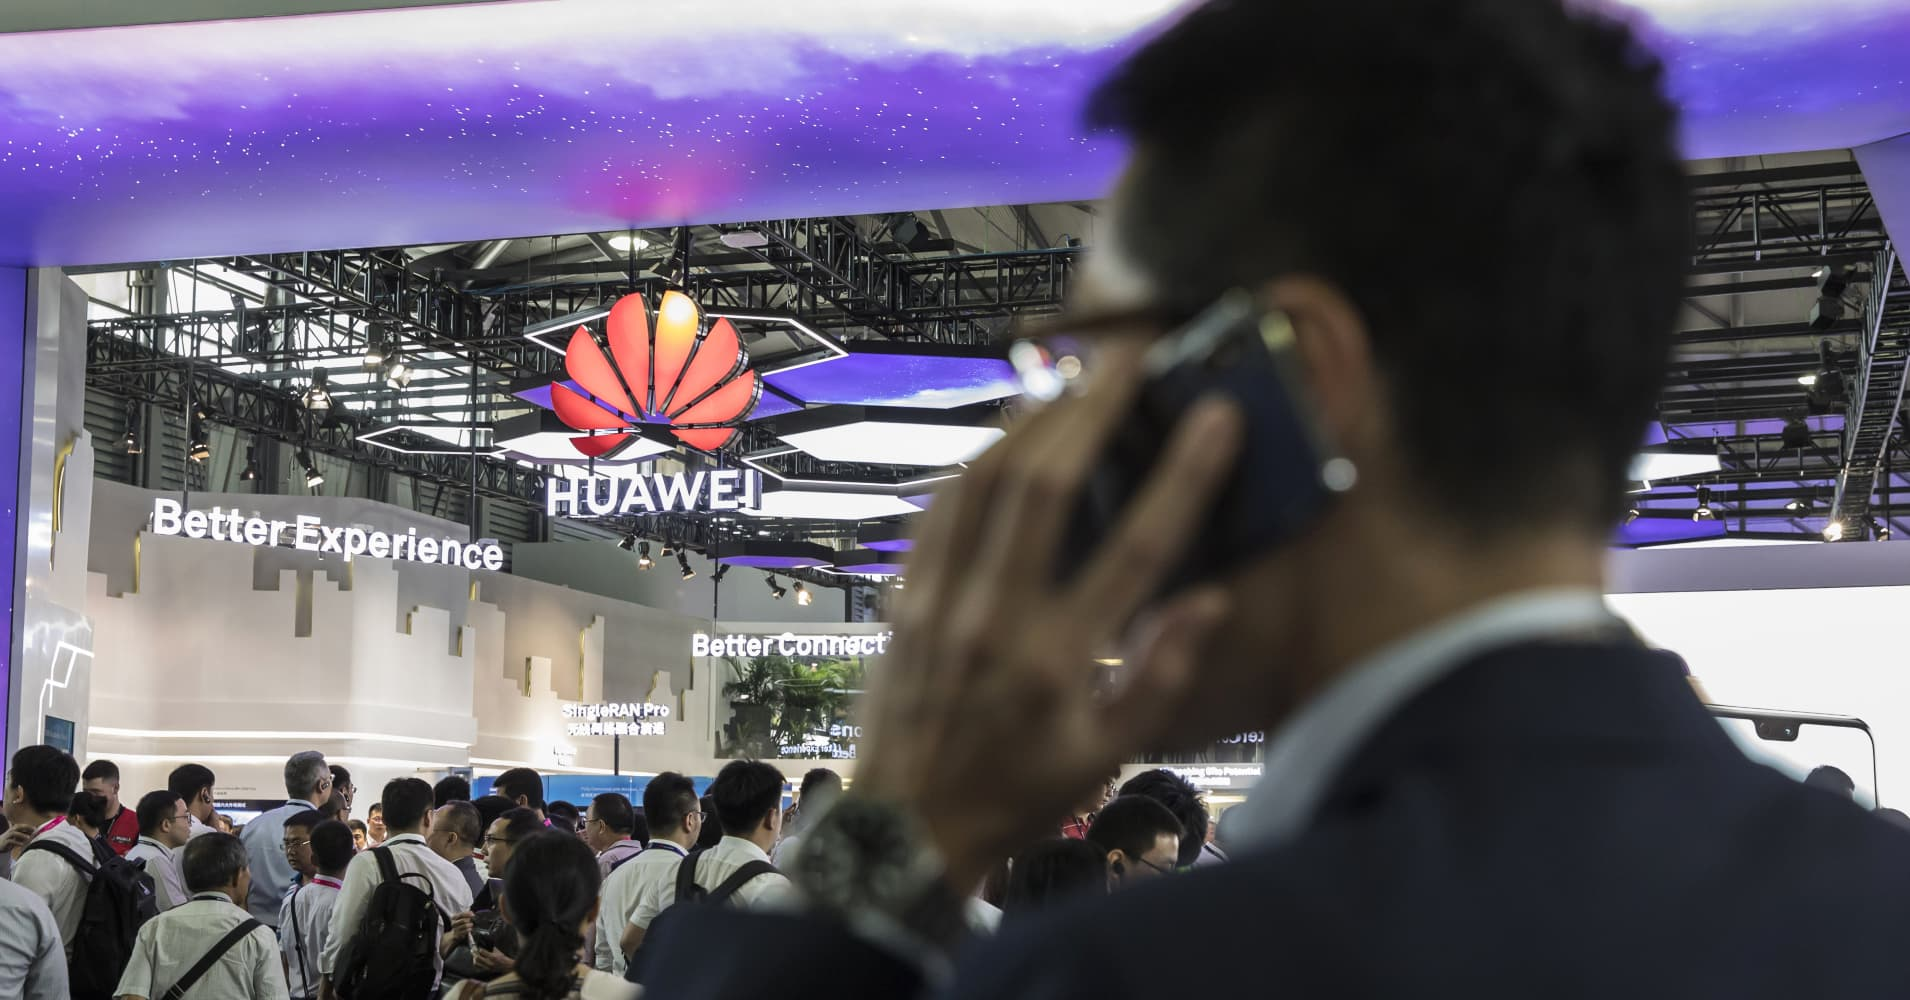 US government reportedly asked allies to avoid using equipment manufactured by China's Huawei